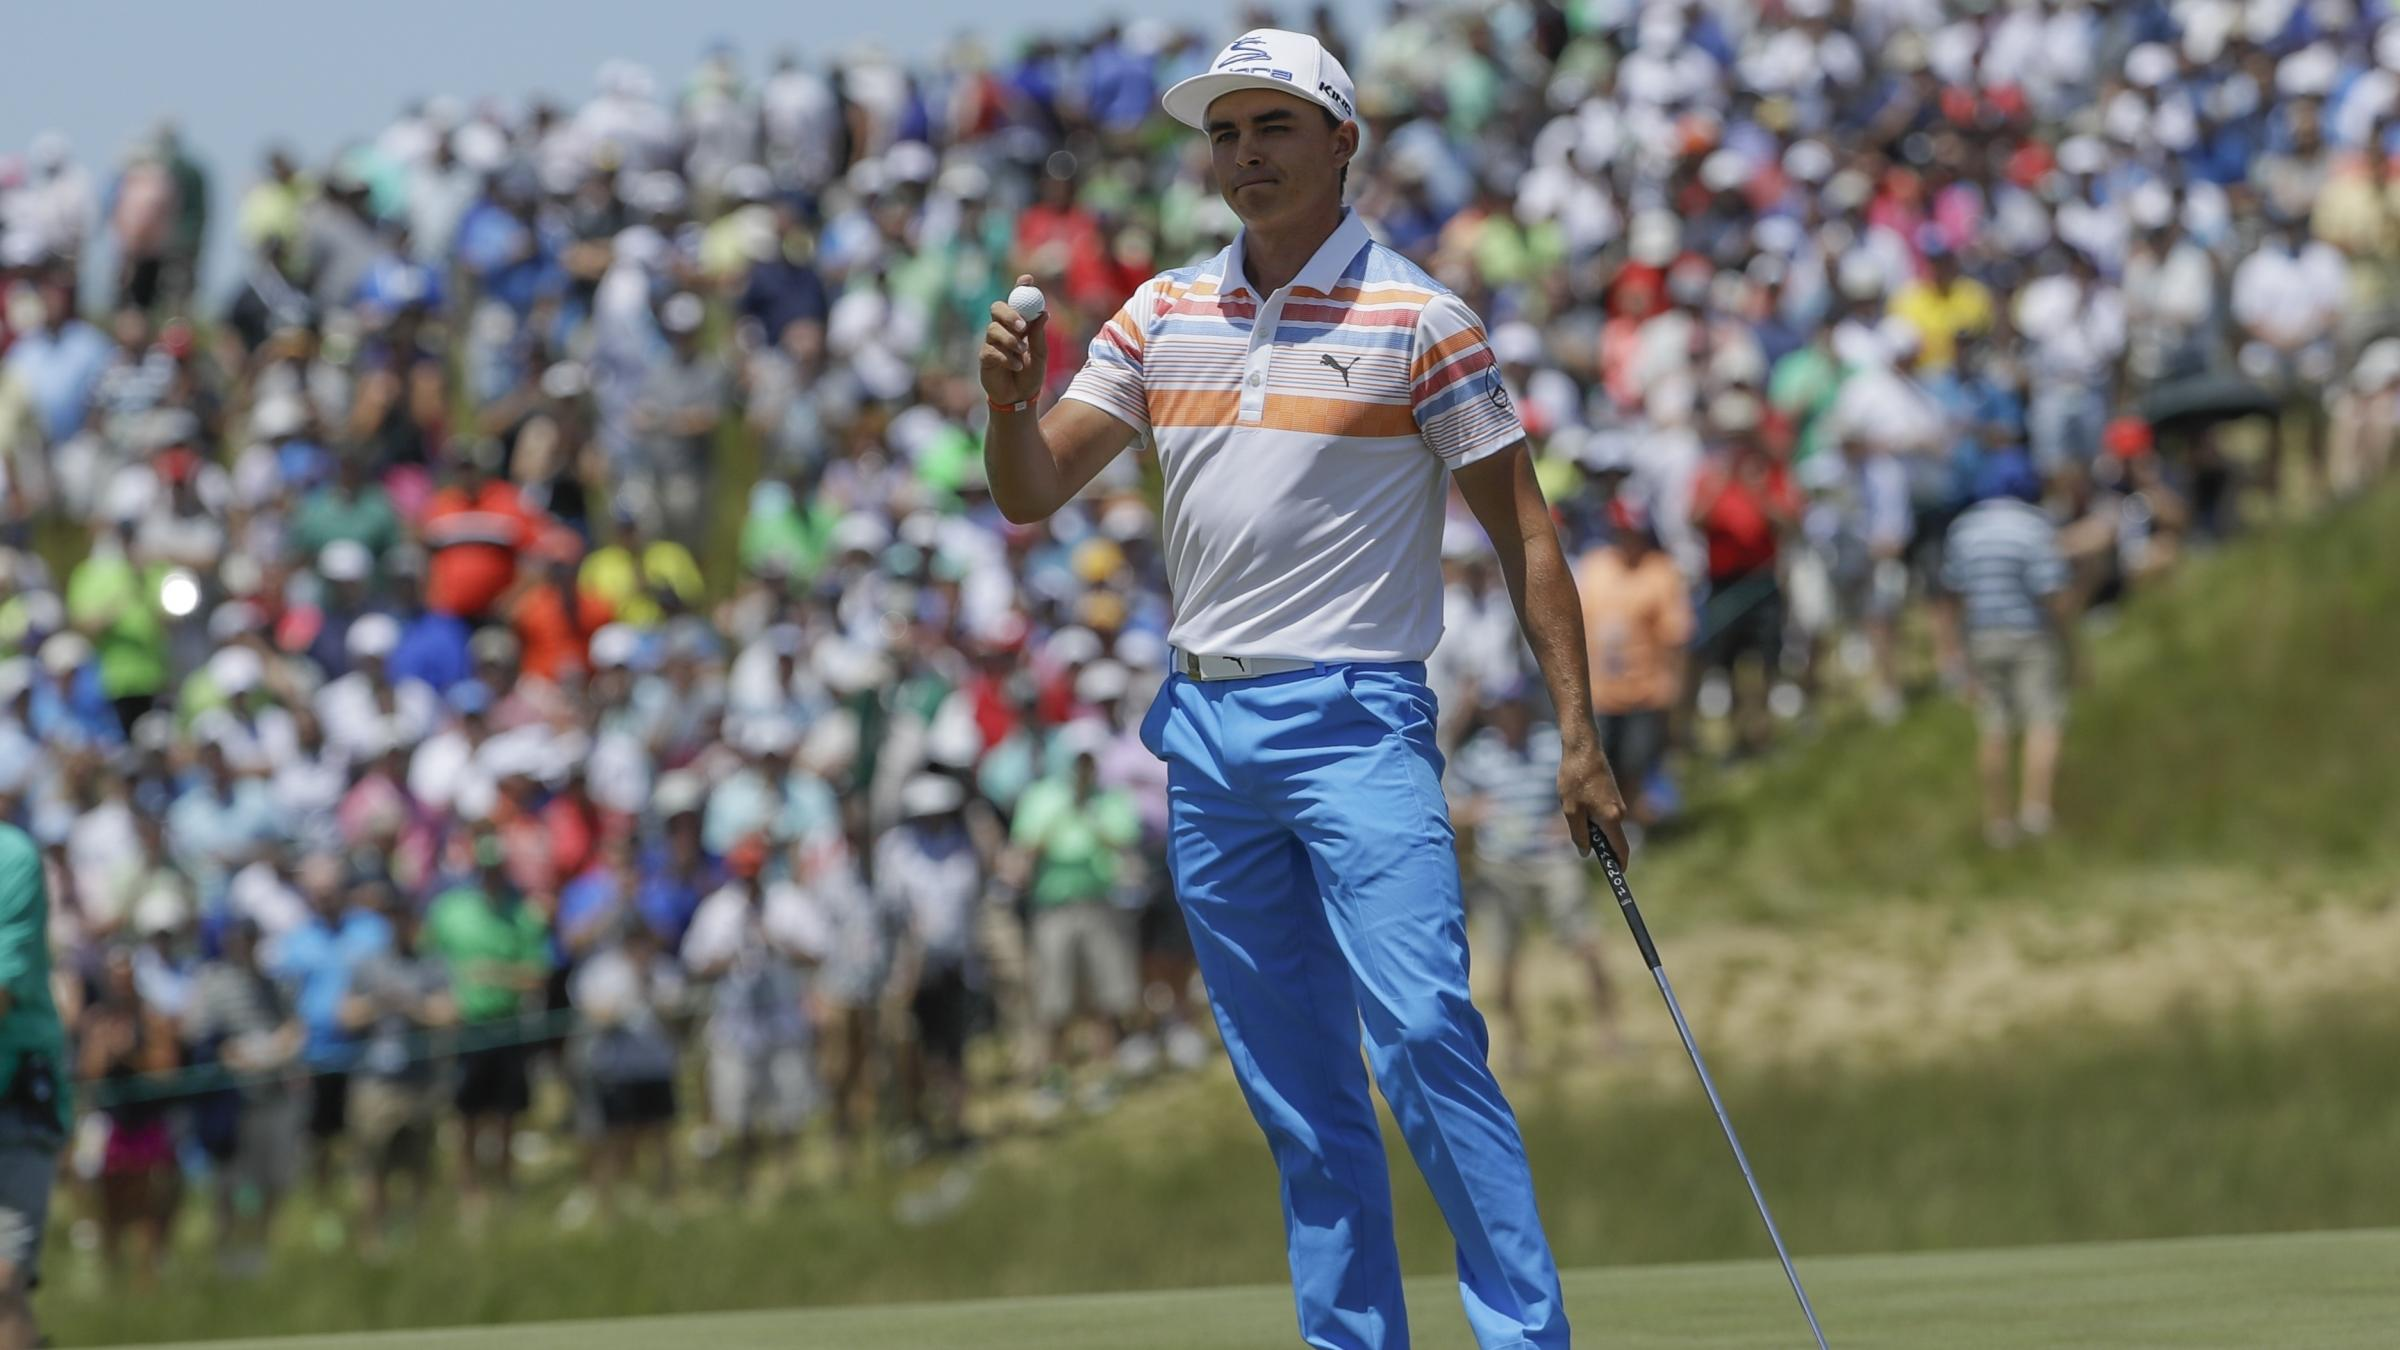 Rickie Fowler leads US Open on day of highs and lows